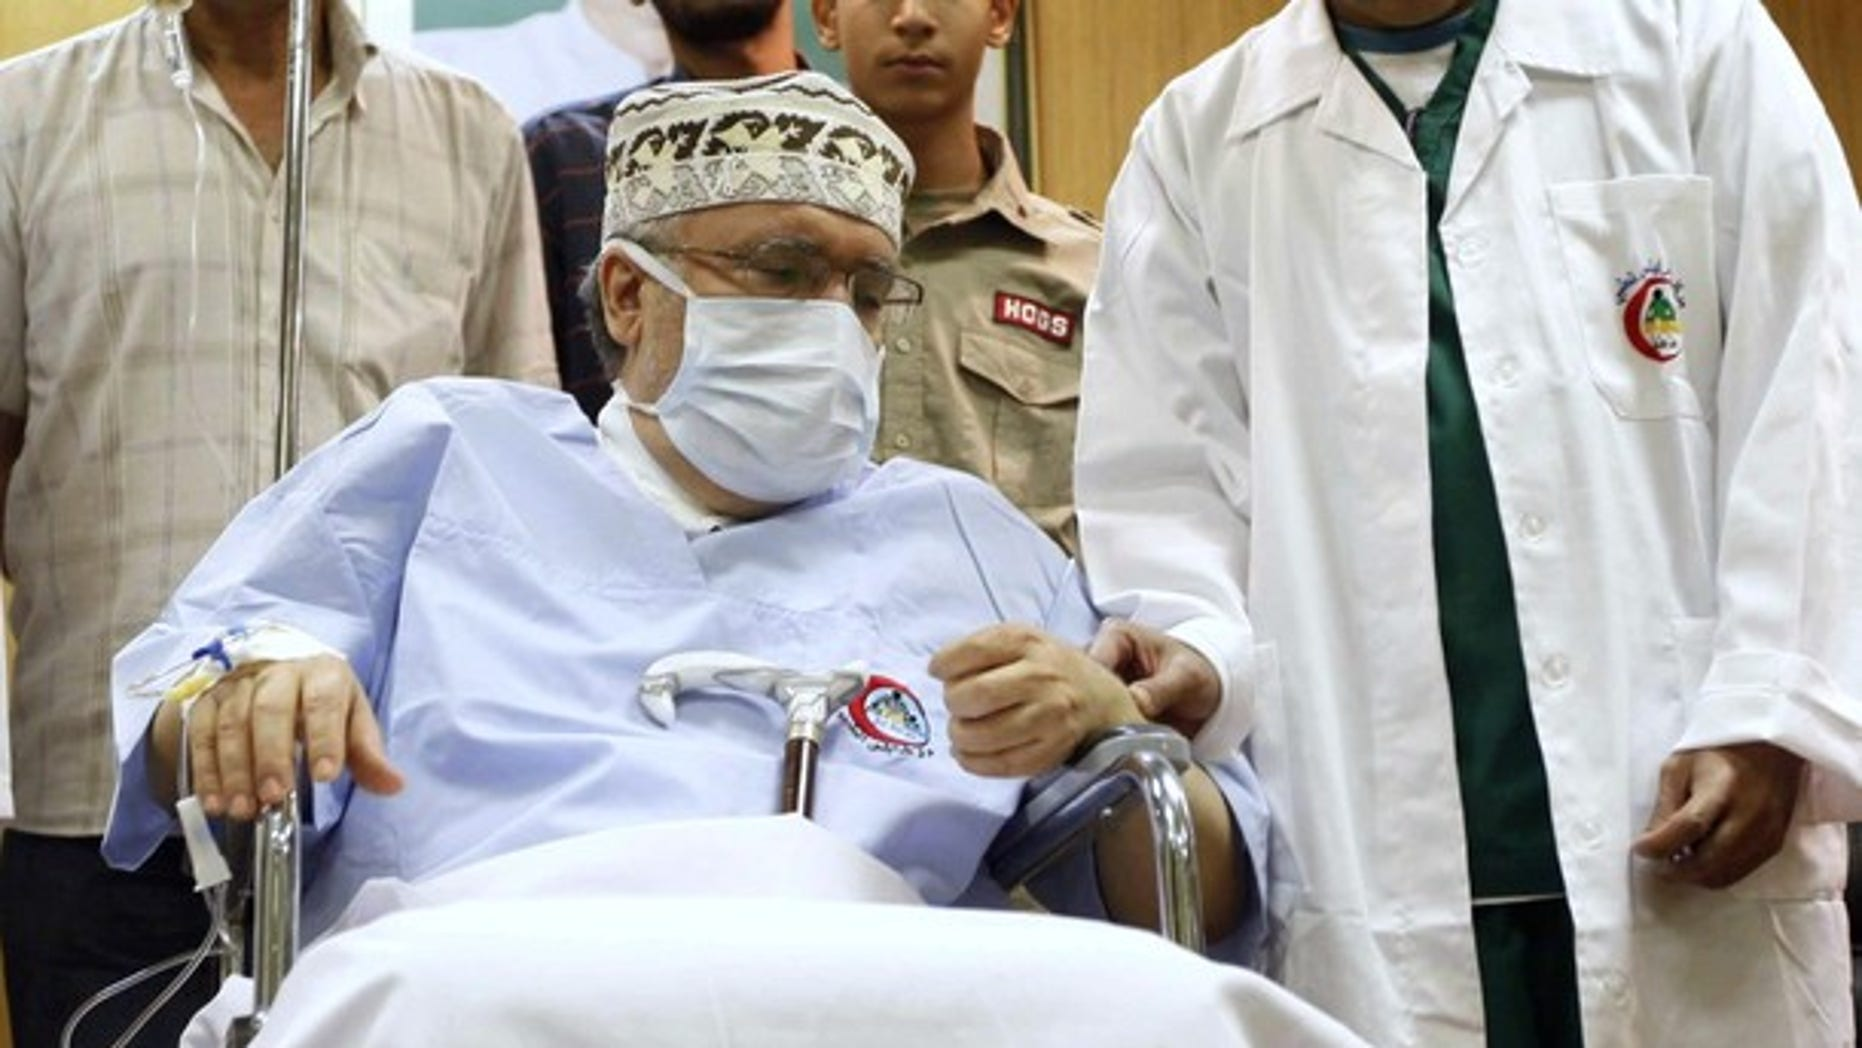 Sept. 9, 2009: Abdel Basset al-Megrahi is seen in his room at a hospital in Tripoli.